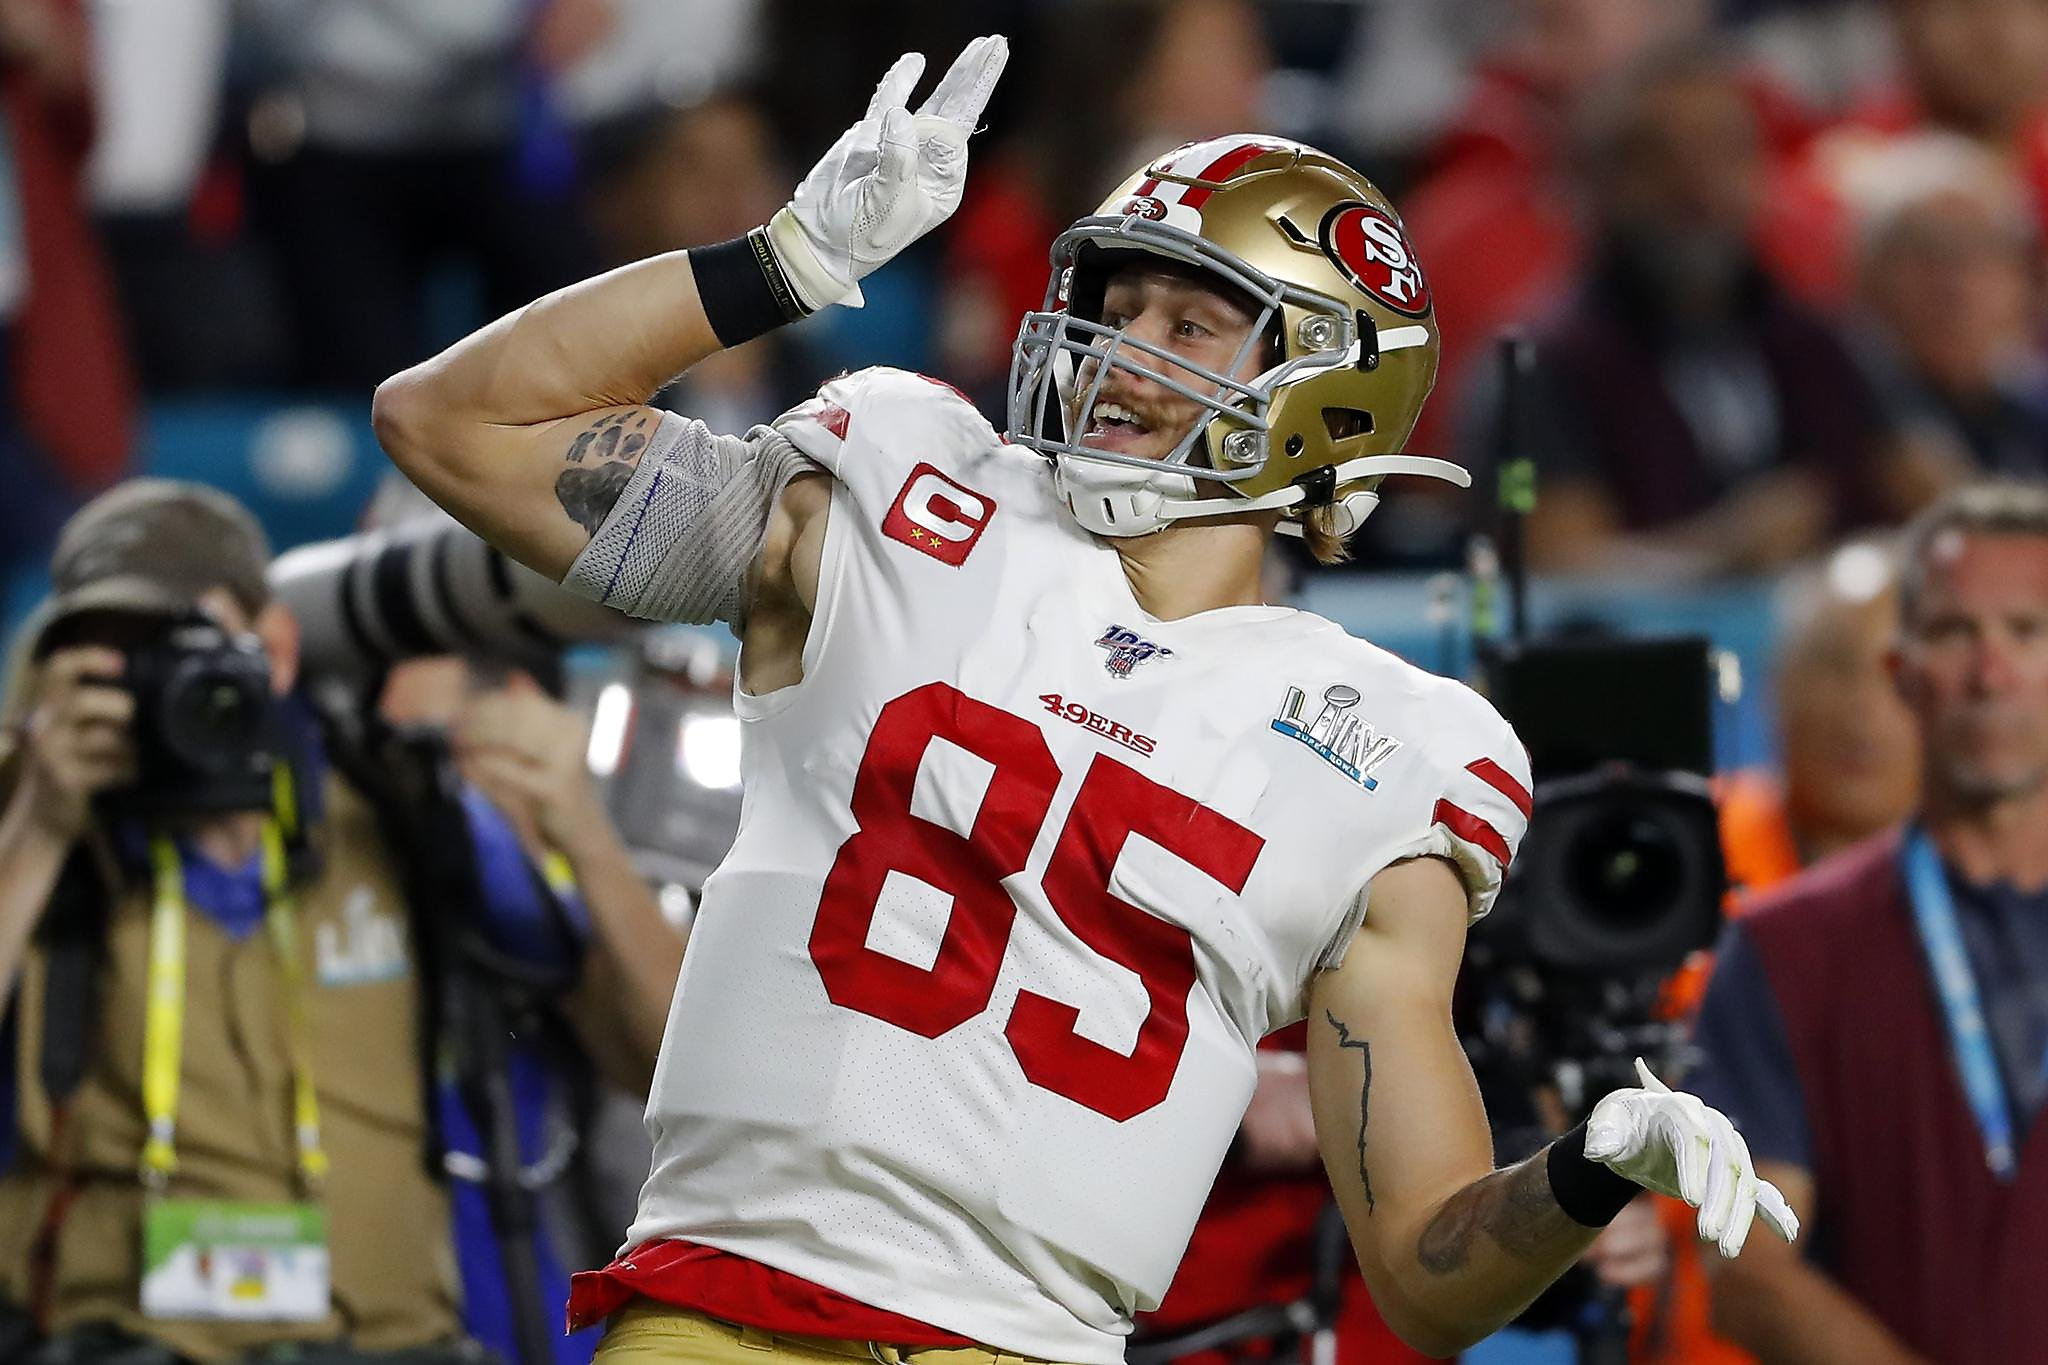 Report: Kittle agrees to 5-year contract extension with 49ers